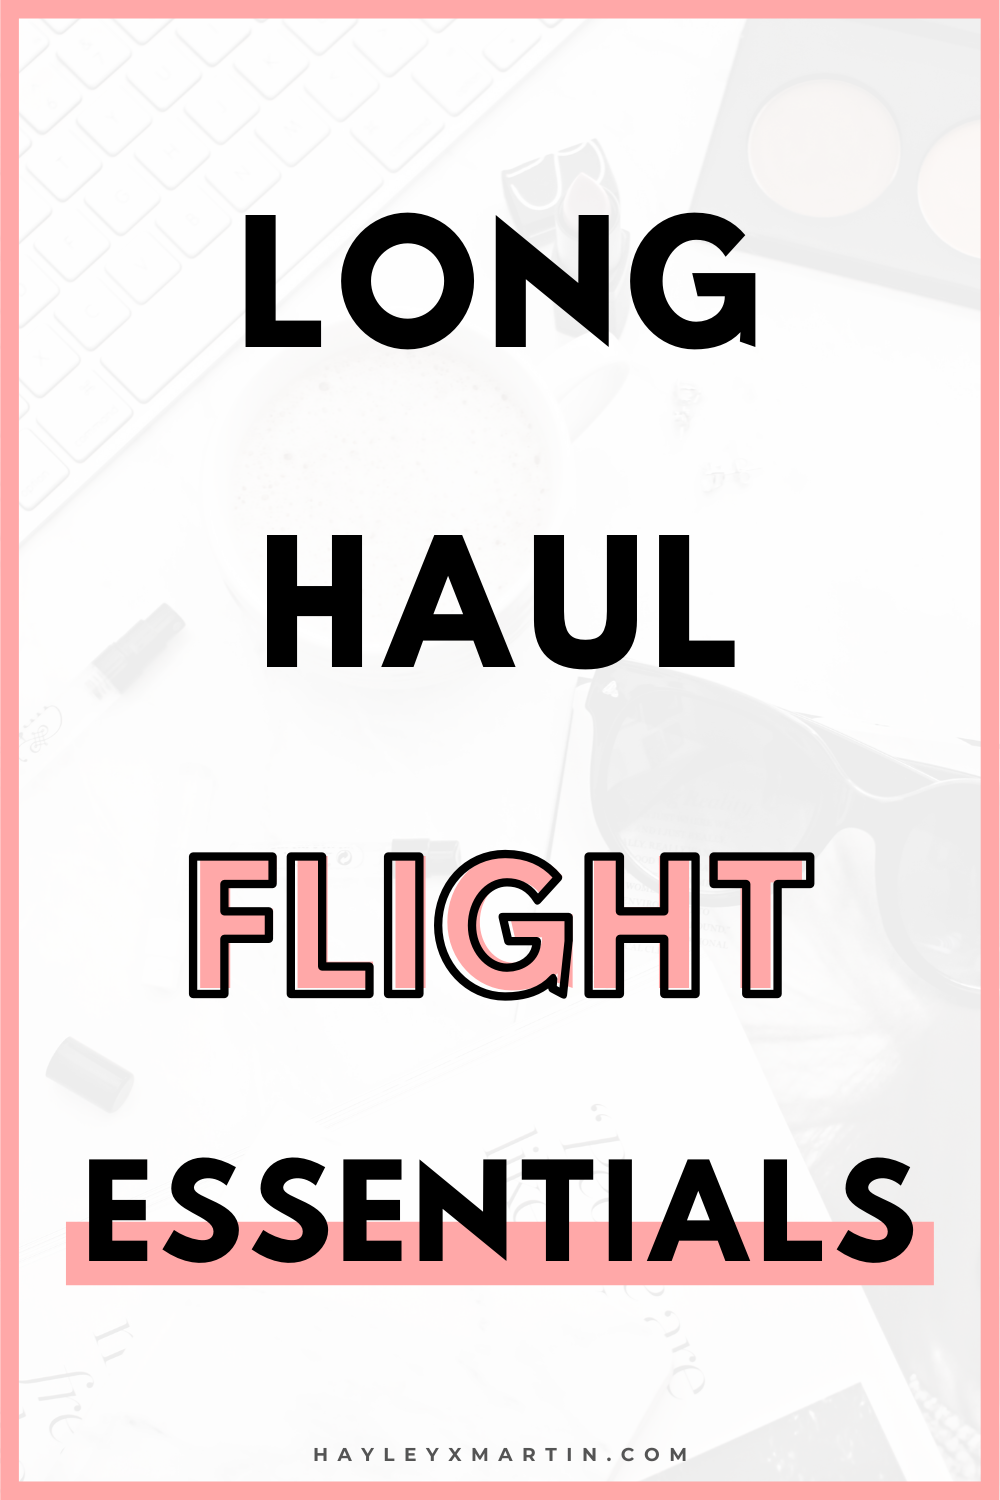 LONG HAUL FLIGHT ESSENTIALS | HAYLEYXMARTIN